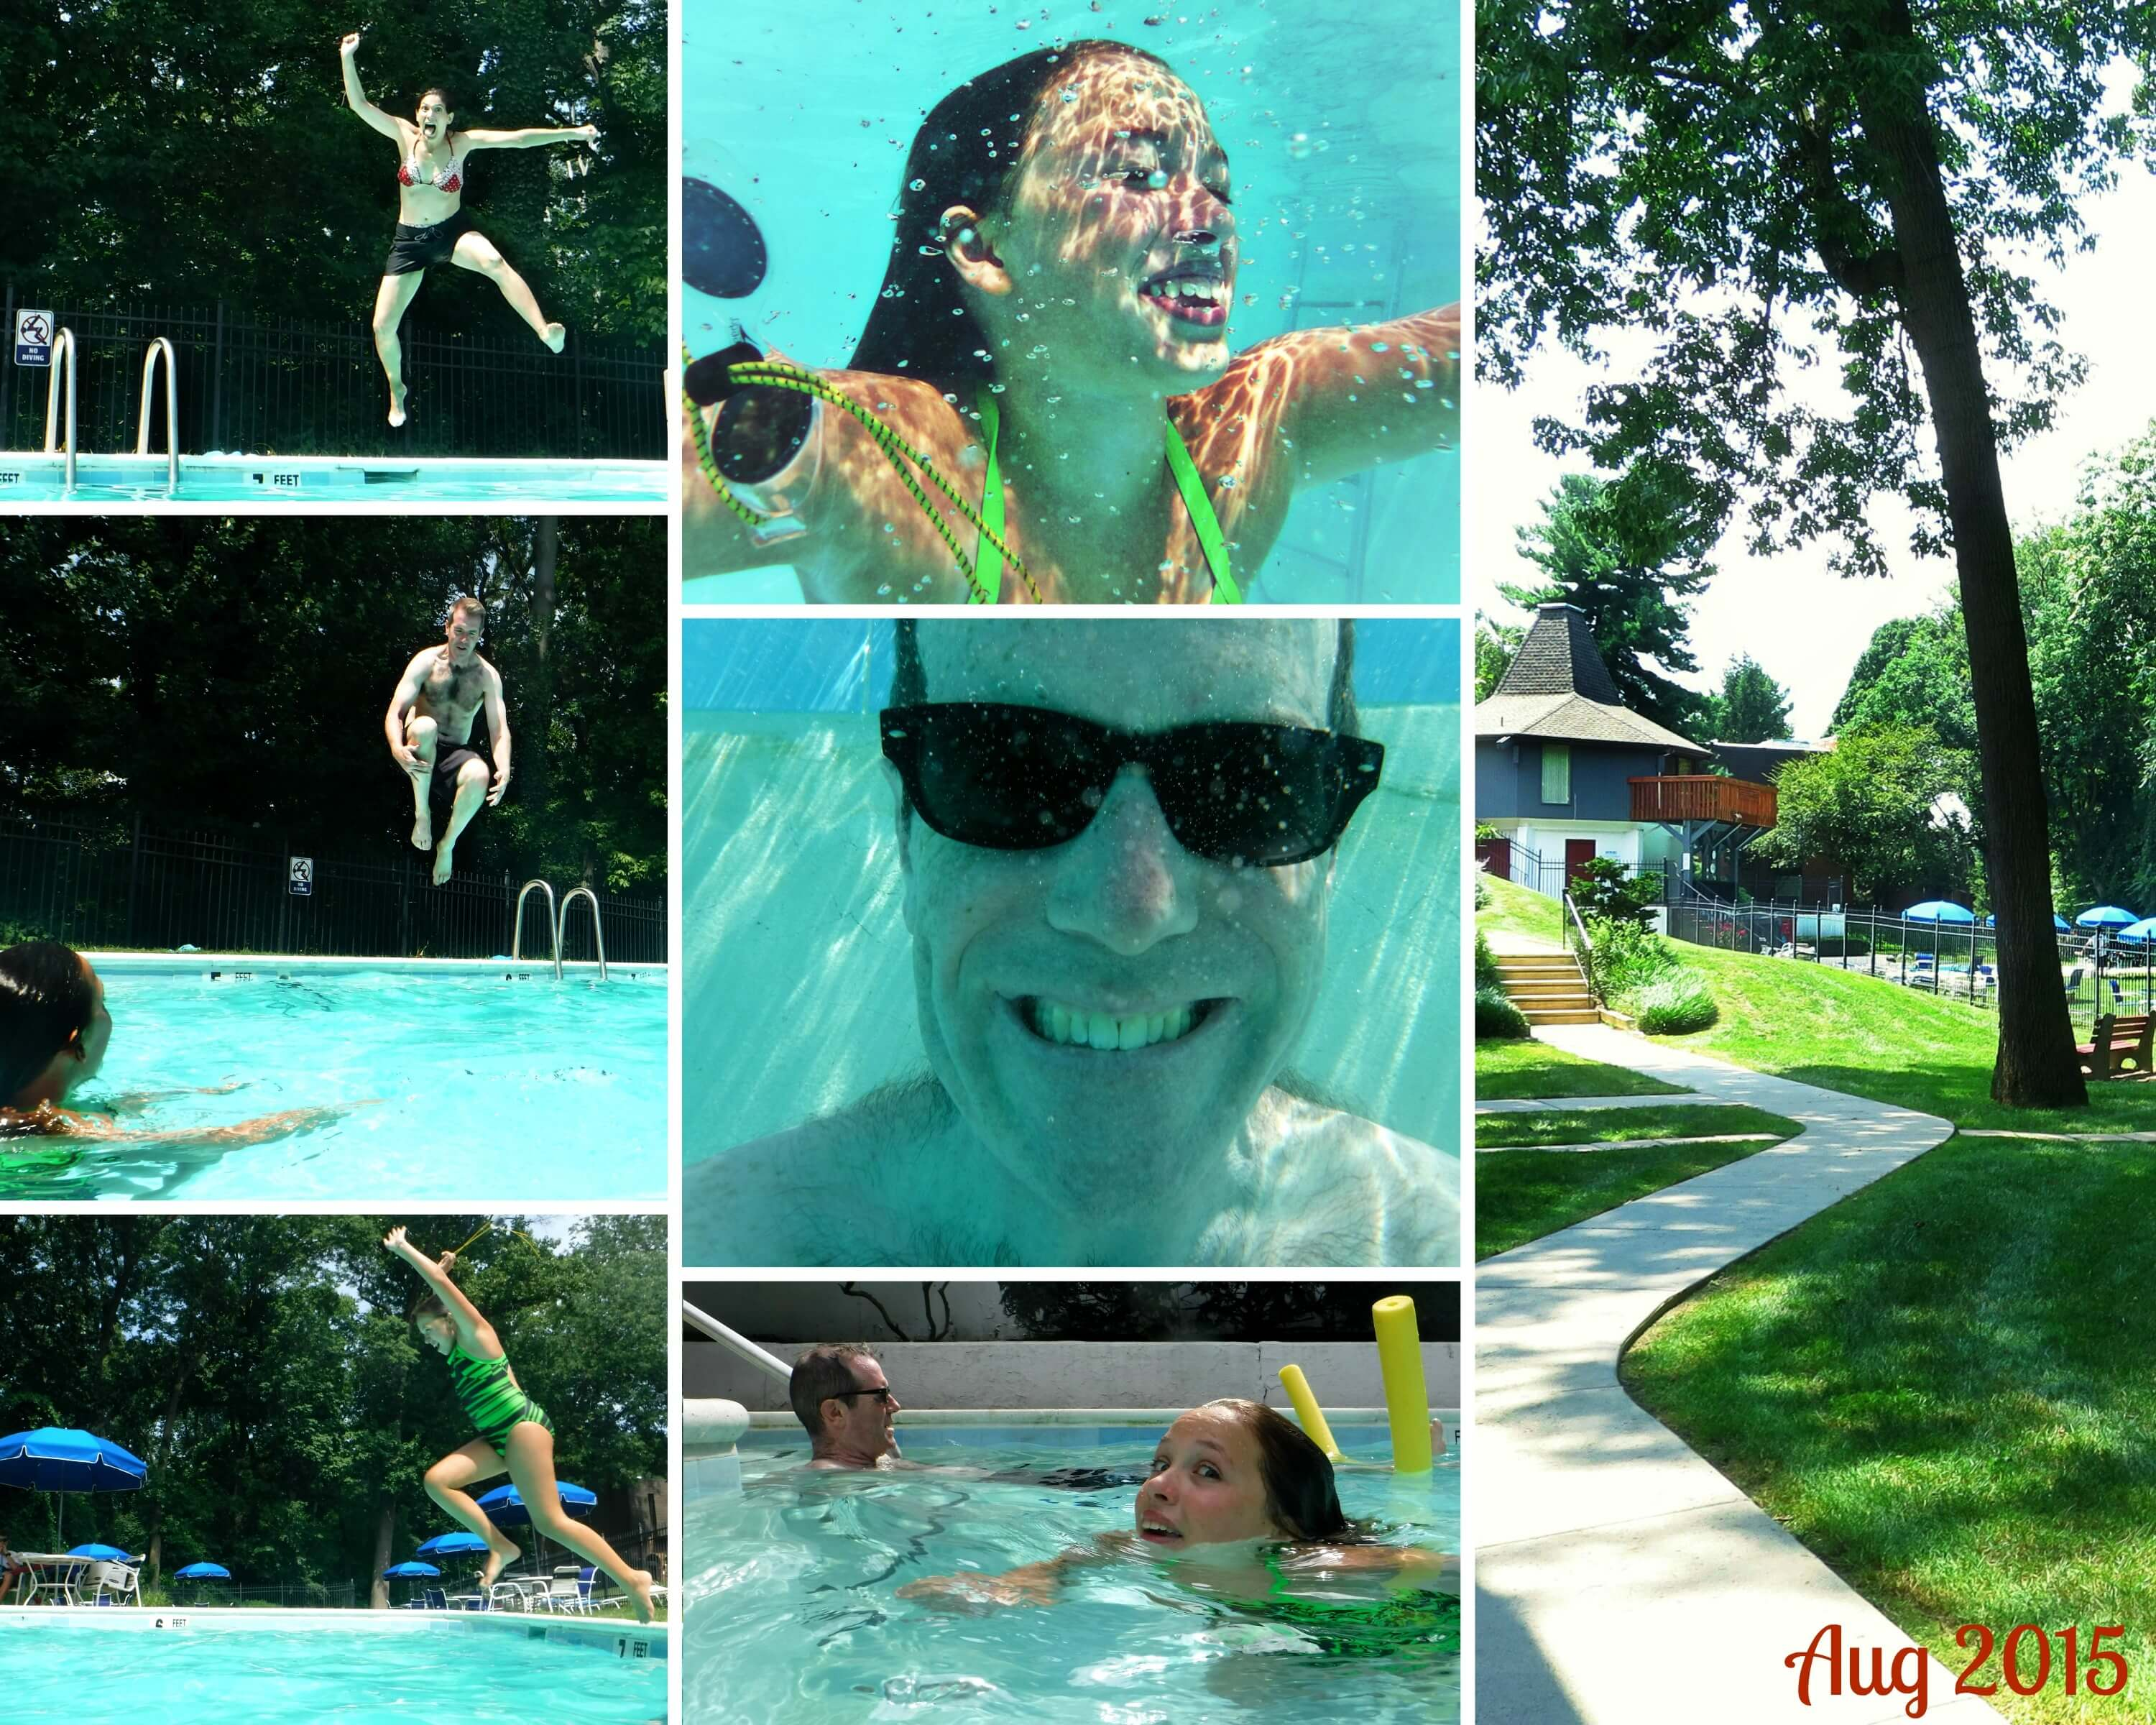 EastFallsLocal gypsy lane collage pool date